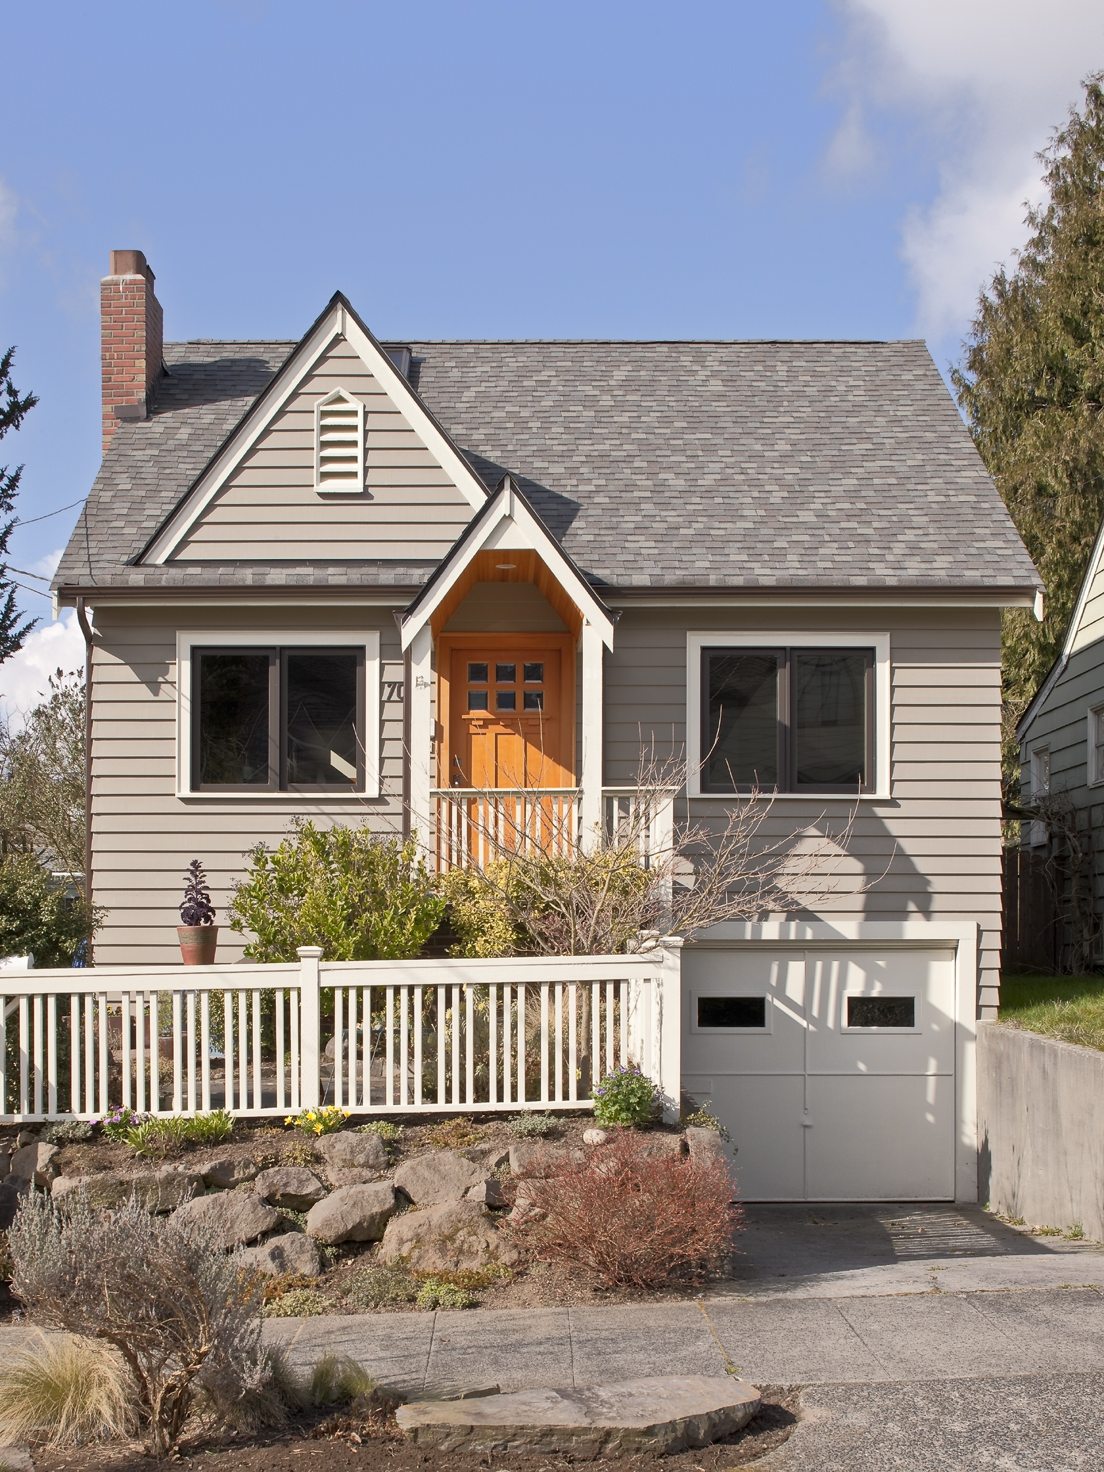 Seattle Craftsman addition with quaint front entry porch, white picket fence and white garage door